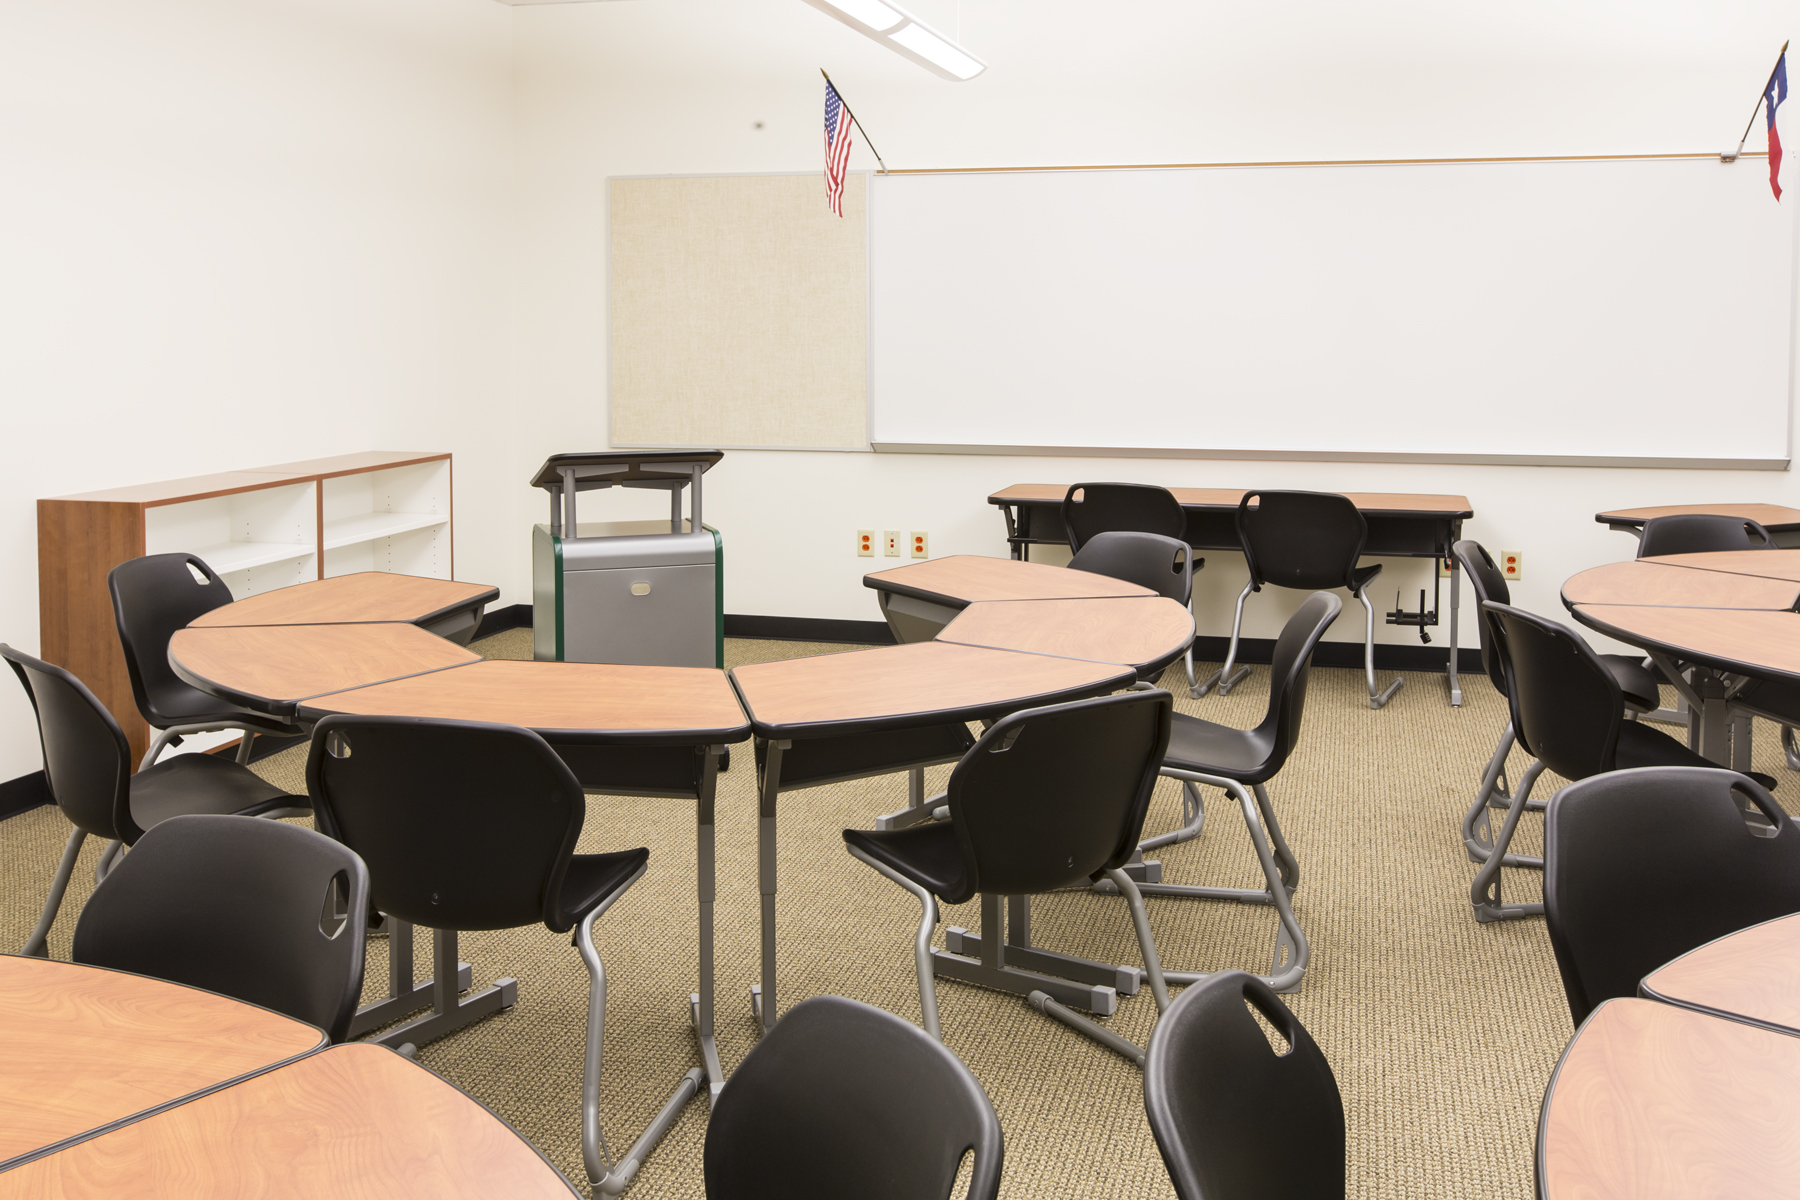 Classroom Furnitures : School college furniture